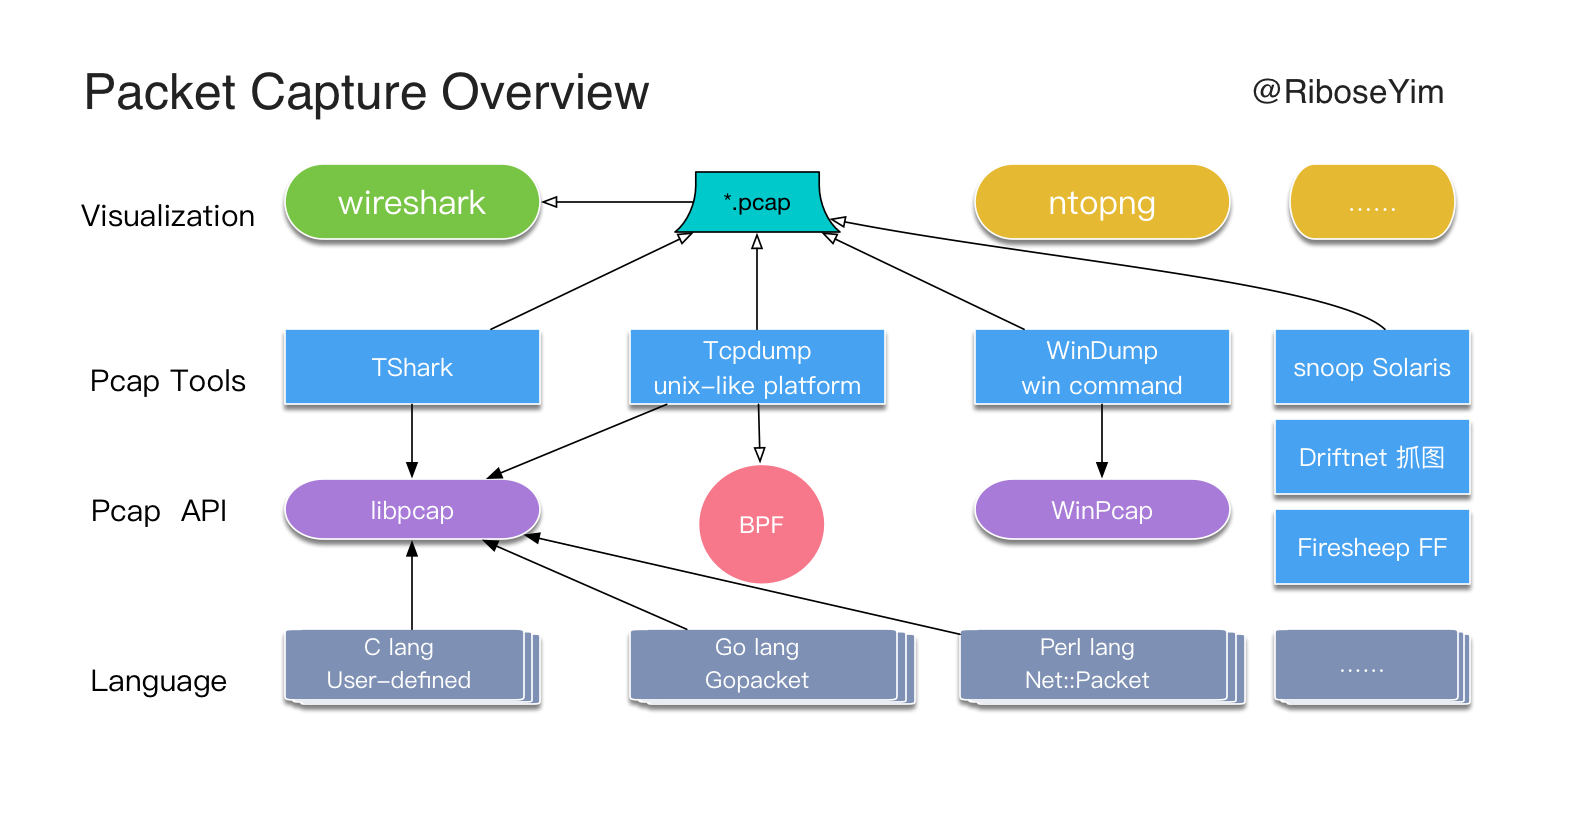 Packet Capture Overview